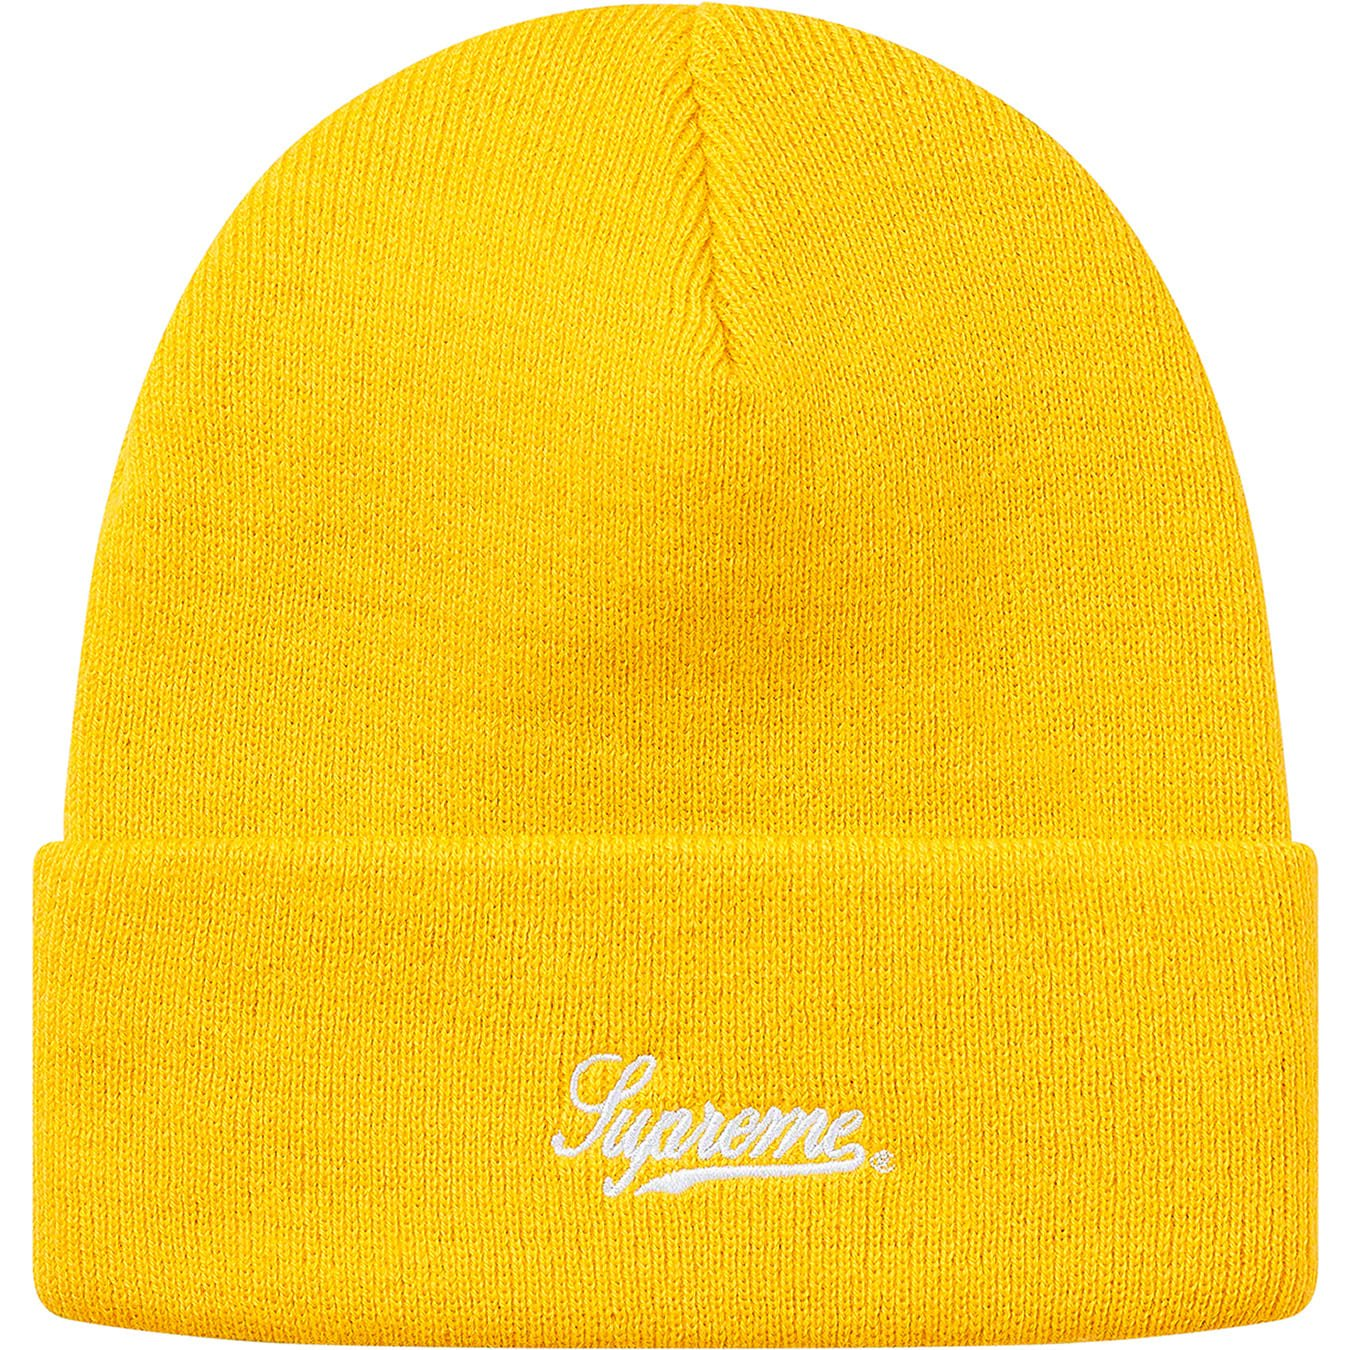 supreme-19aw-19fw-fall-winter-ny-patch-beanie